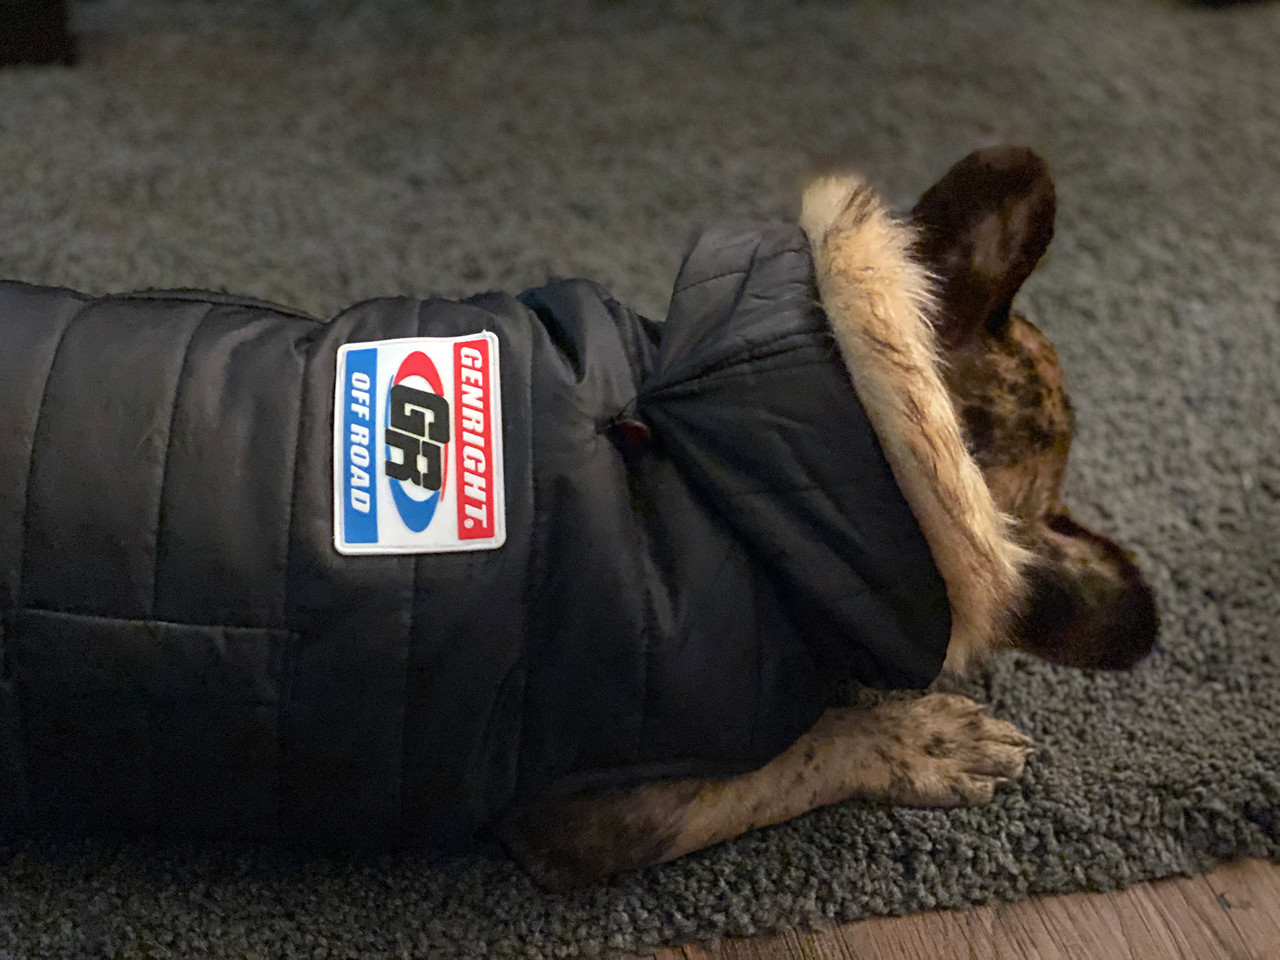 Shown here on a dog jacket